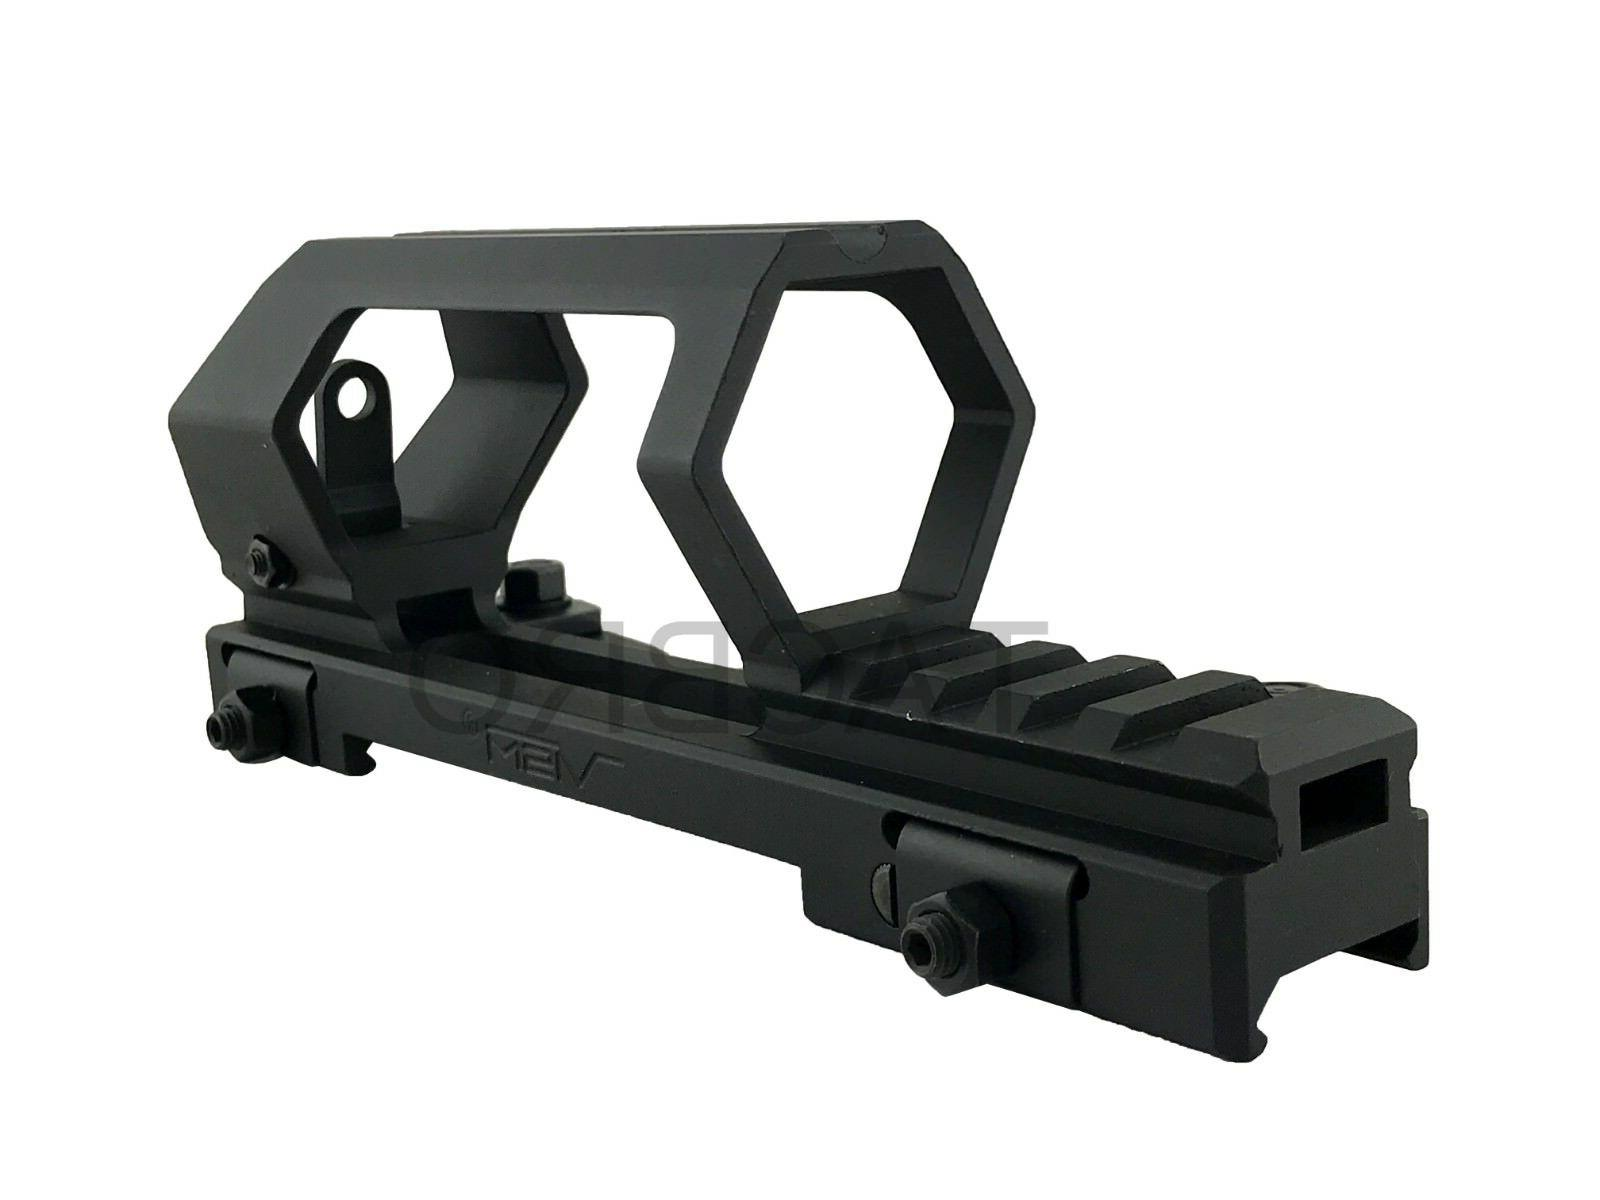 TACBRO Quick Release Carry Handle For Picatinny